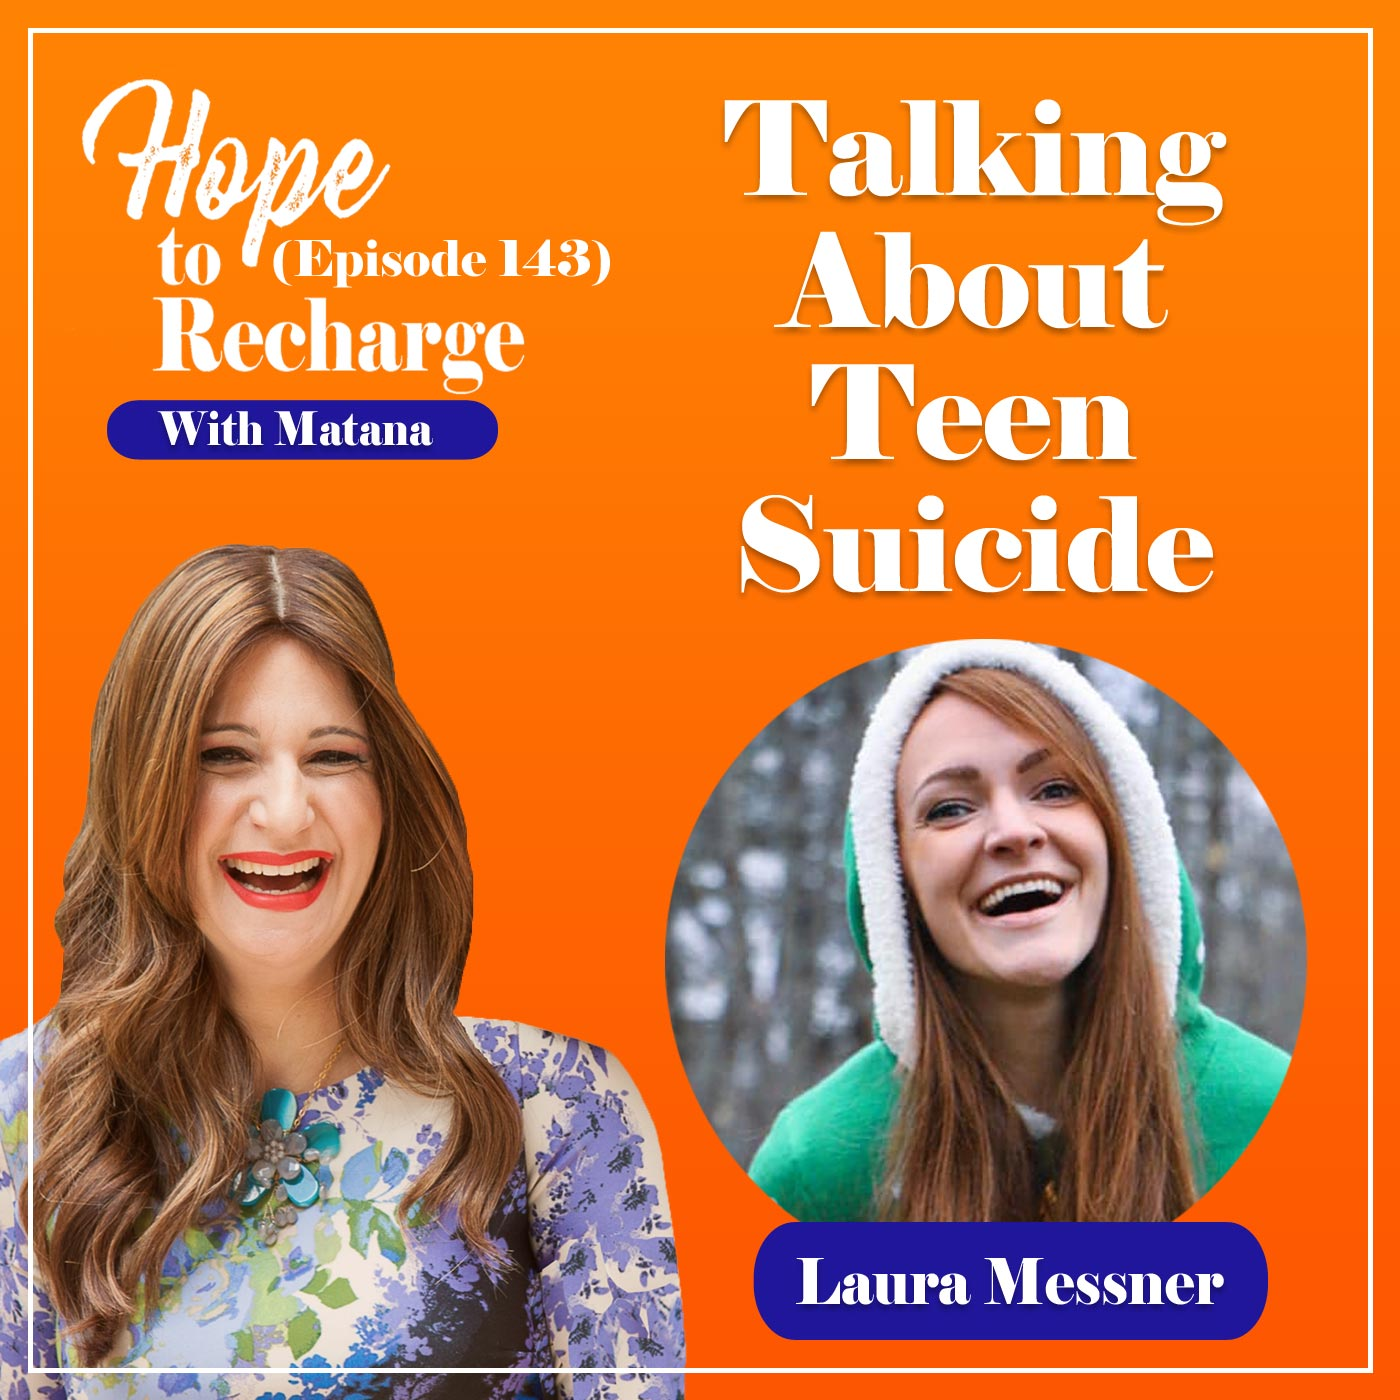 Talking About Teen Suicide (Laura Messner)